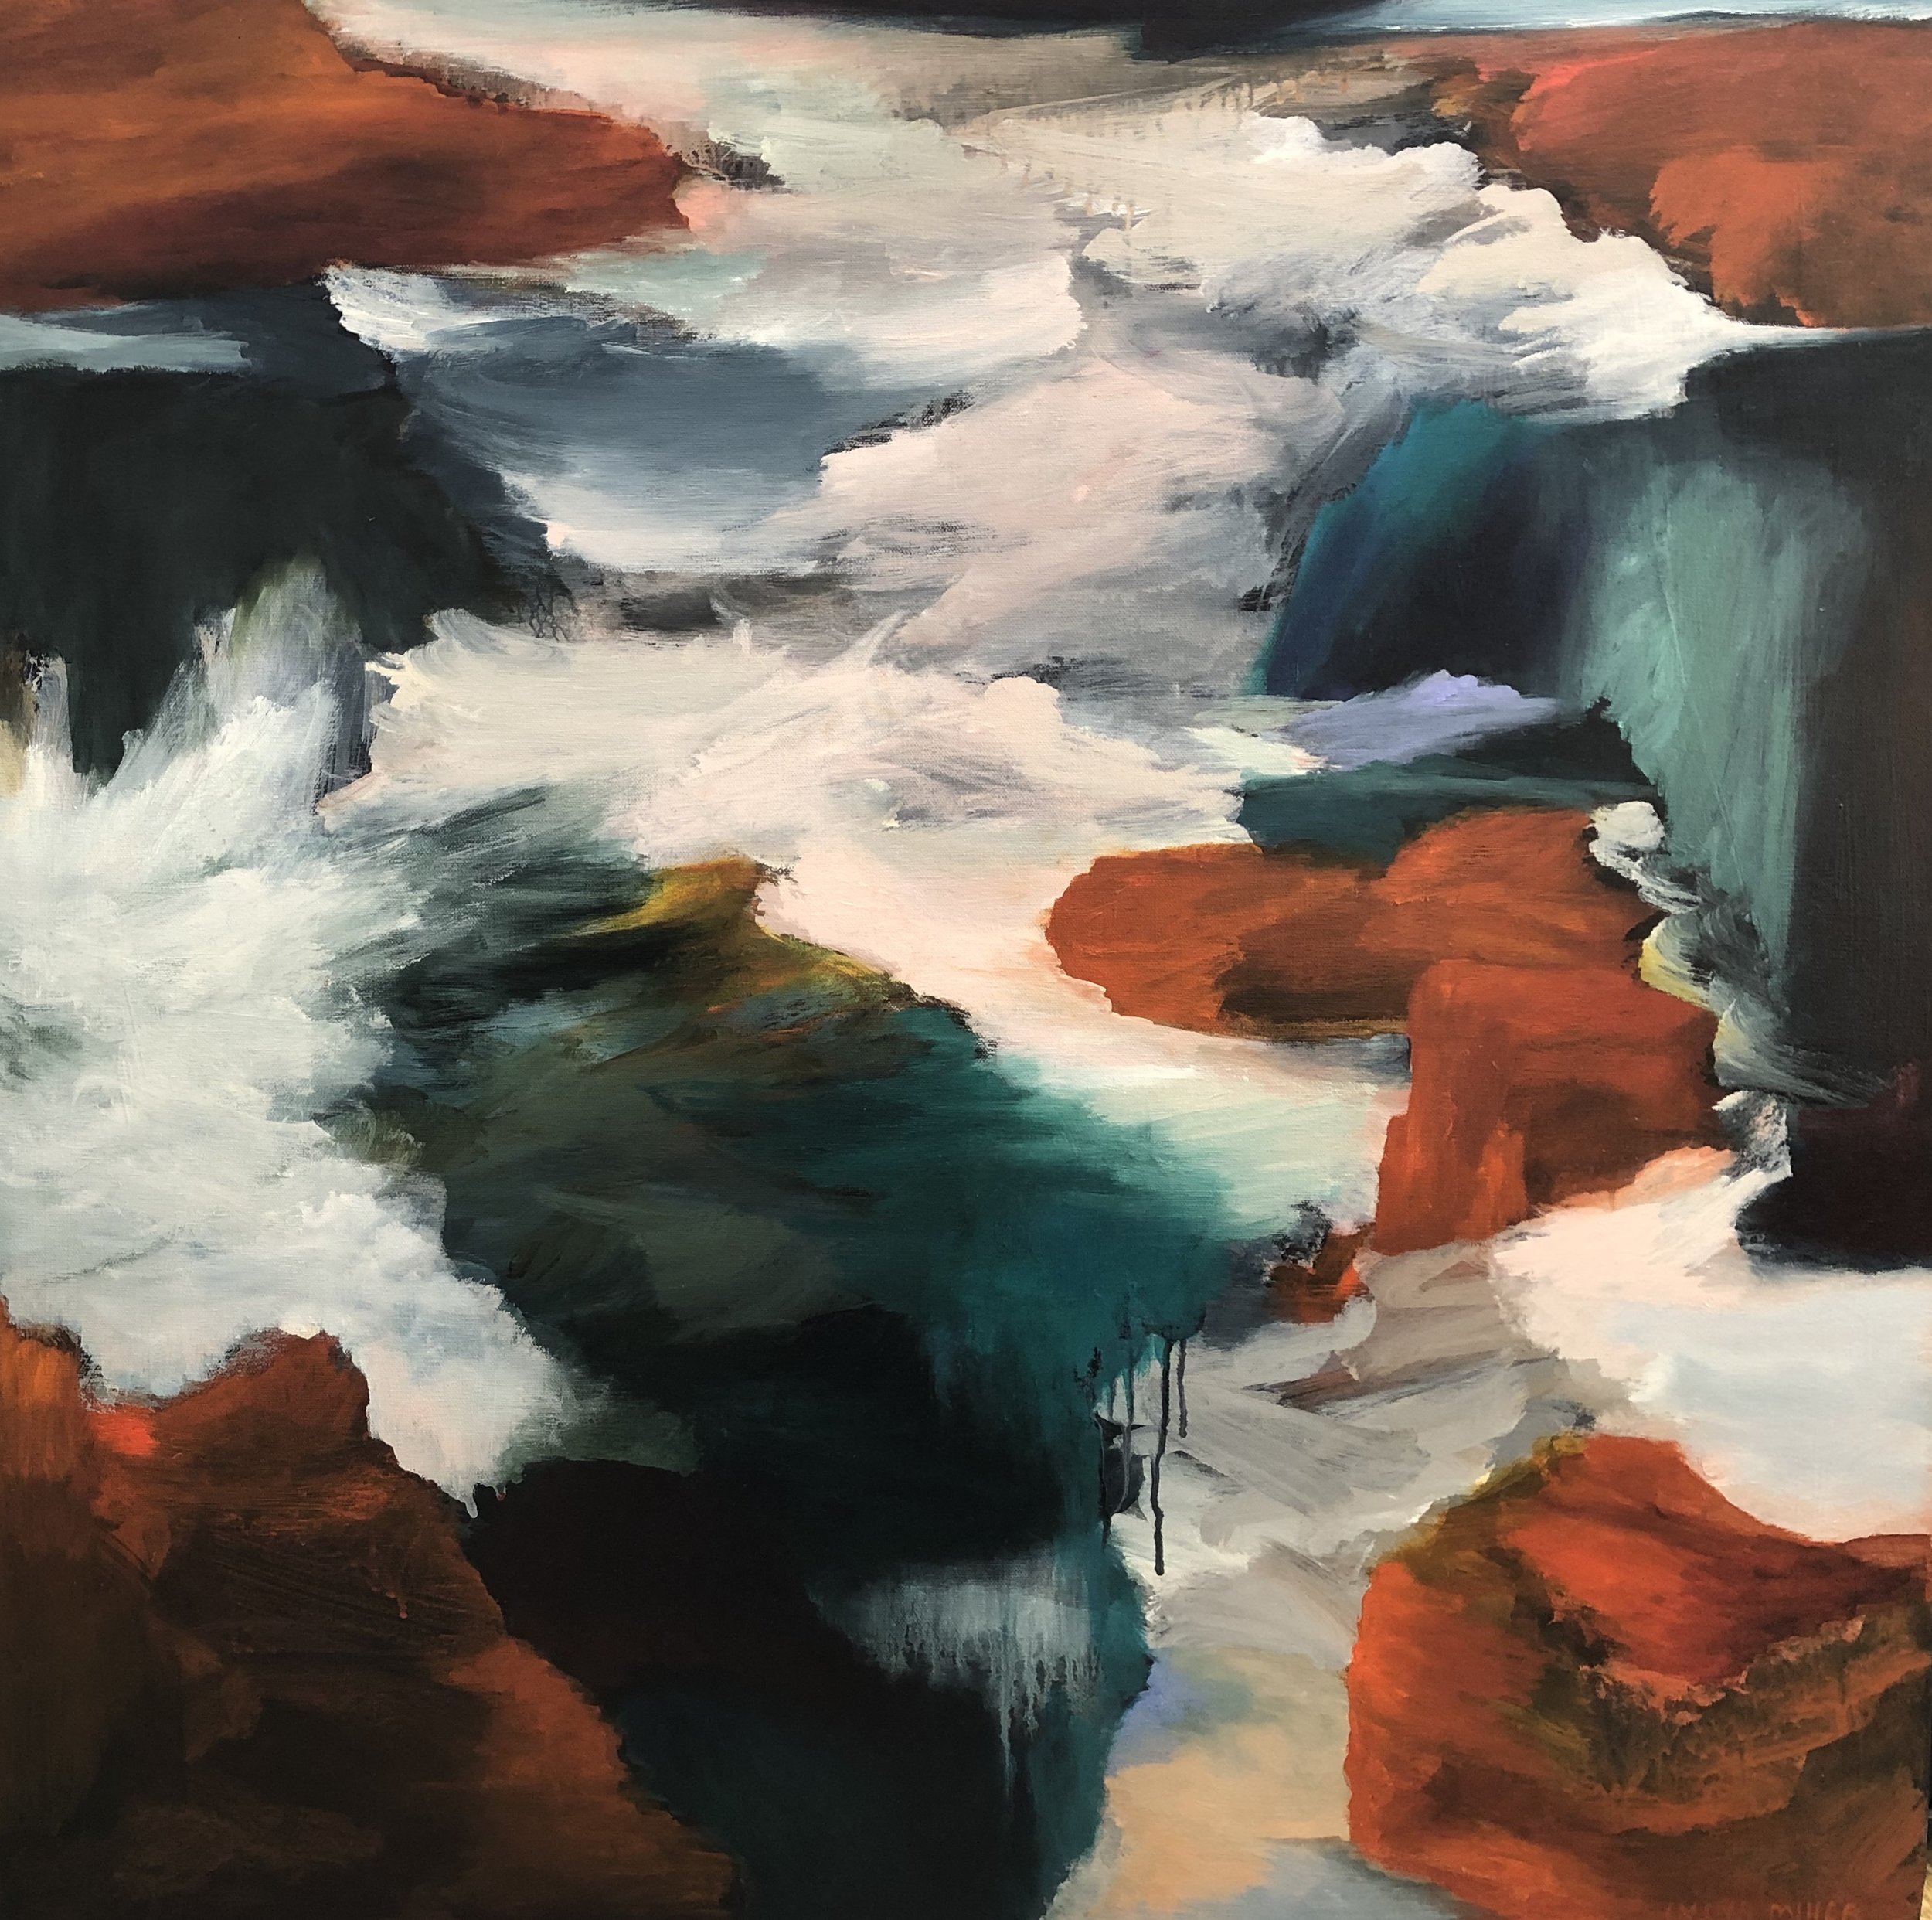 Lydia Miller  Turning Tide  oil on canvas 91x91cm $2200.00